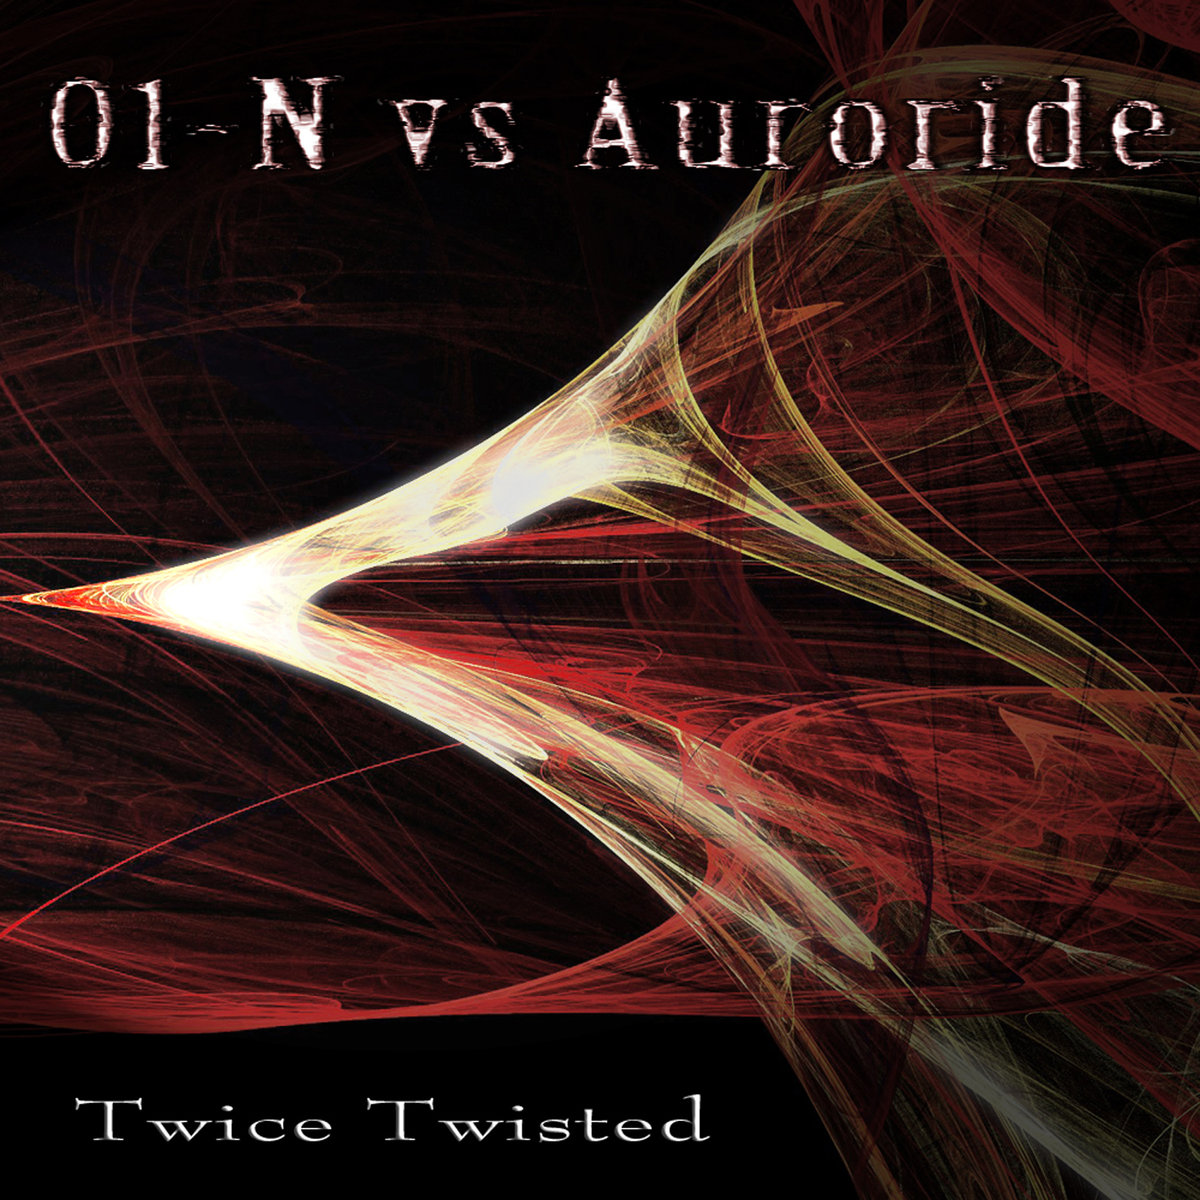 01-N & Auroride - Ion Channel @ 'Twice Twisted' album (electronic, goa)